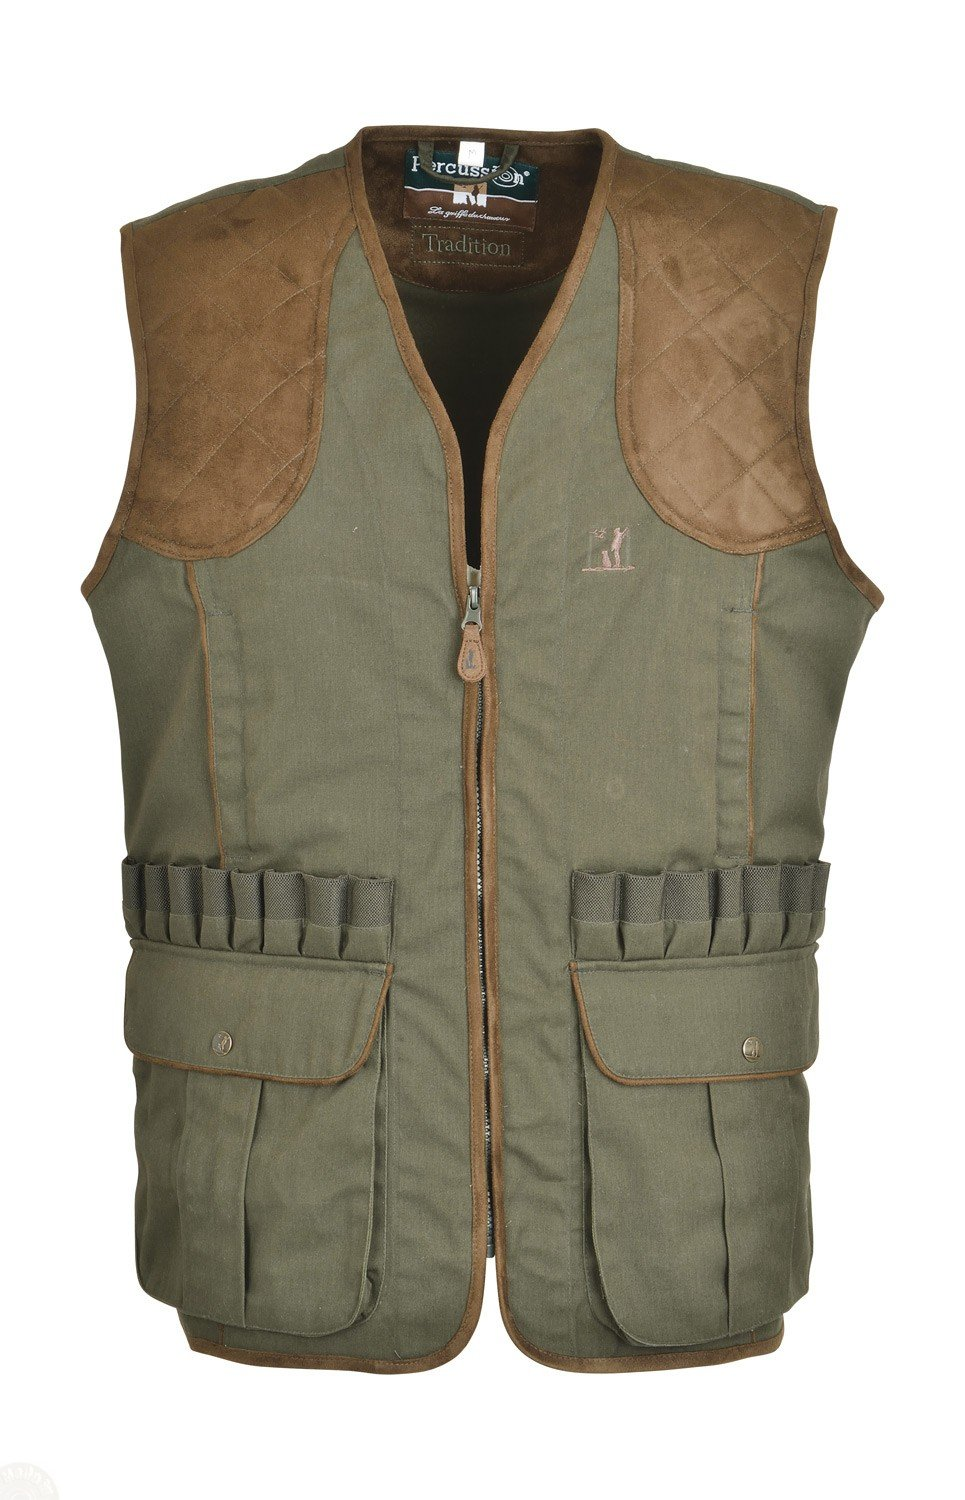 Percussion Gilet de chasse Tradition broderie Percussion-S